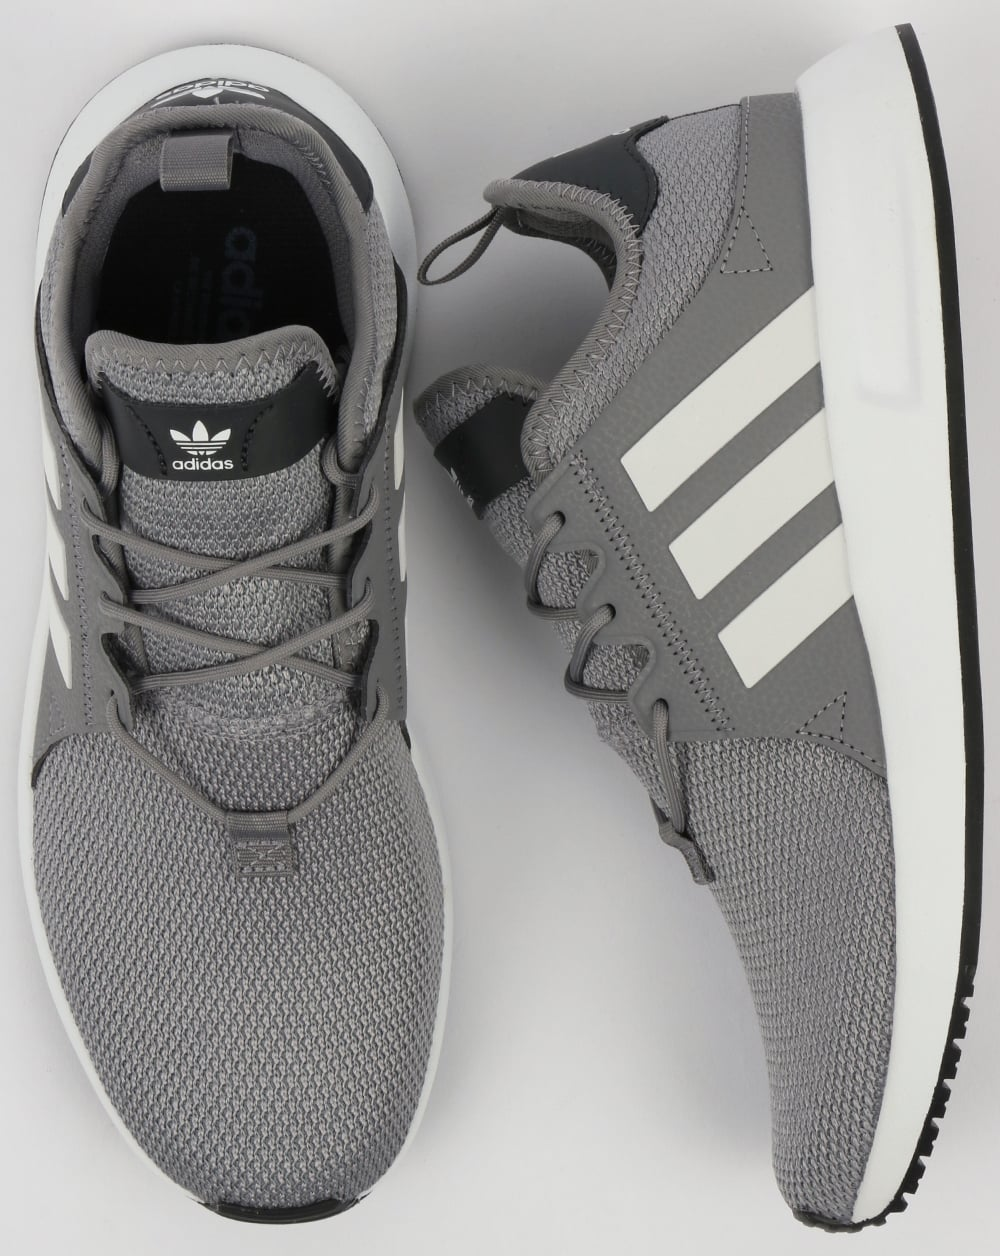 e9e2110be43e adidas Trainers Adidas XPLR Trainers Grey  White Carbon